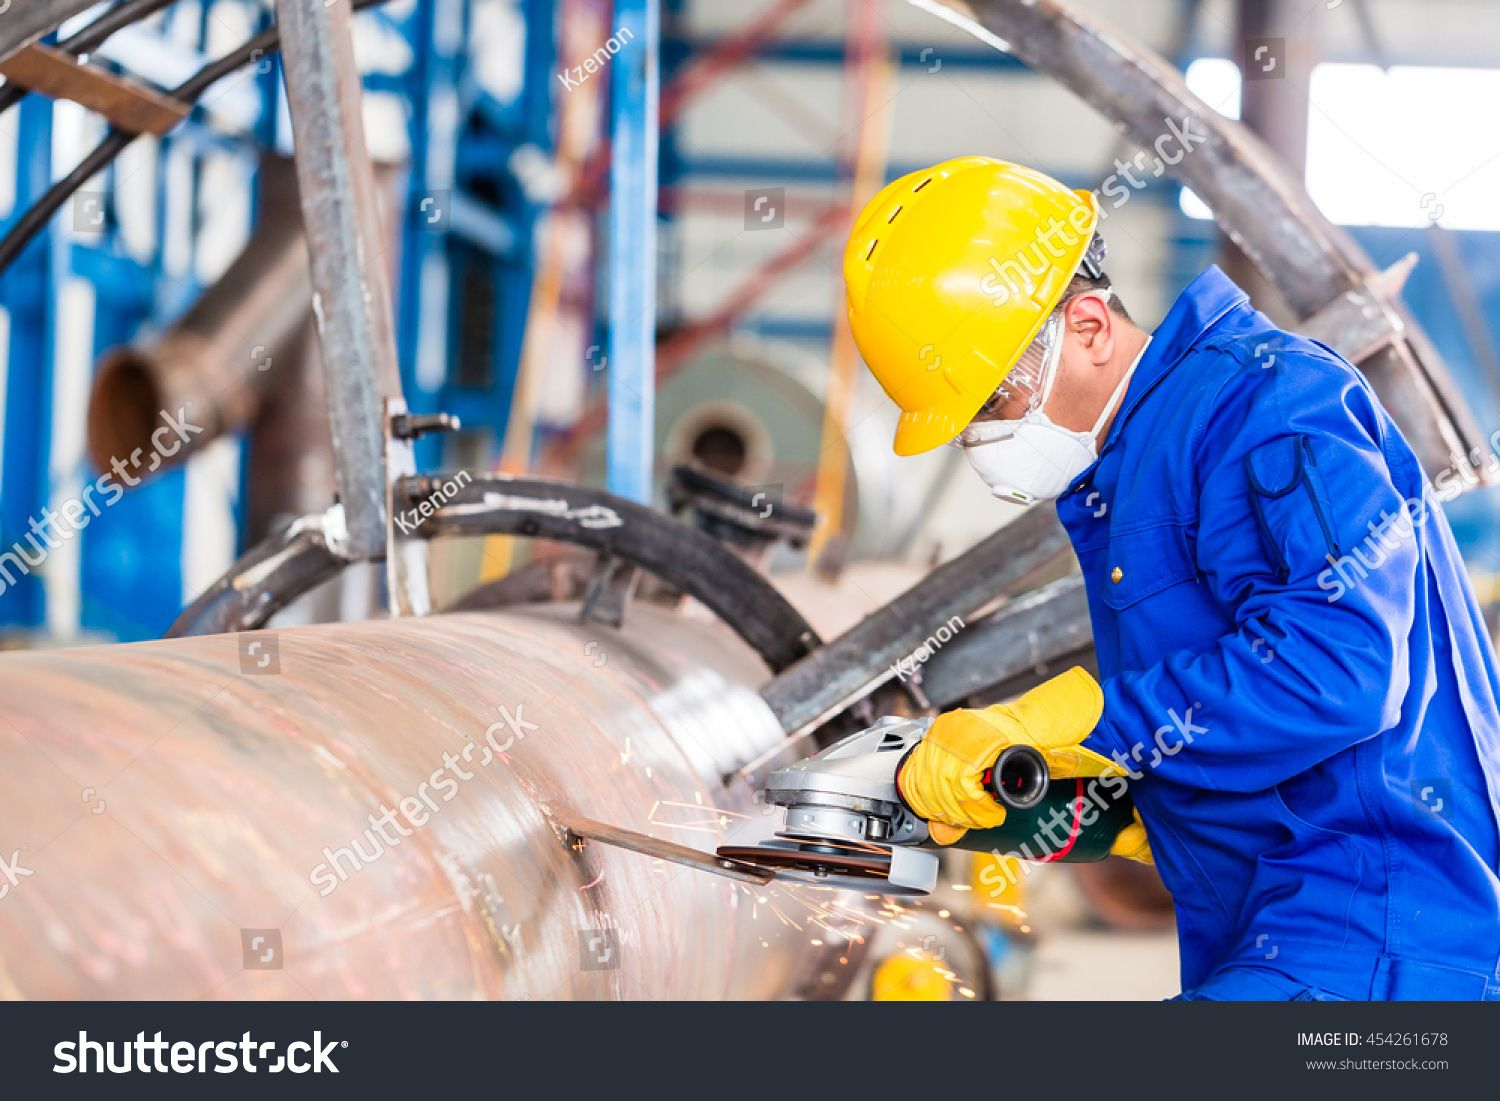 Industrial worker in manufacturing plant grinding to